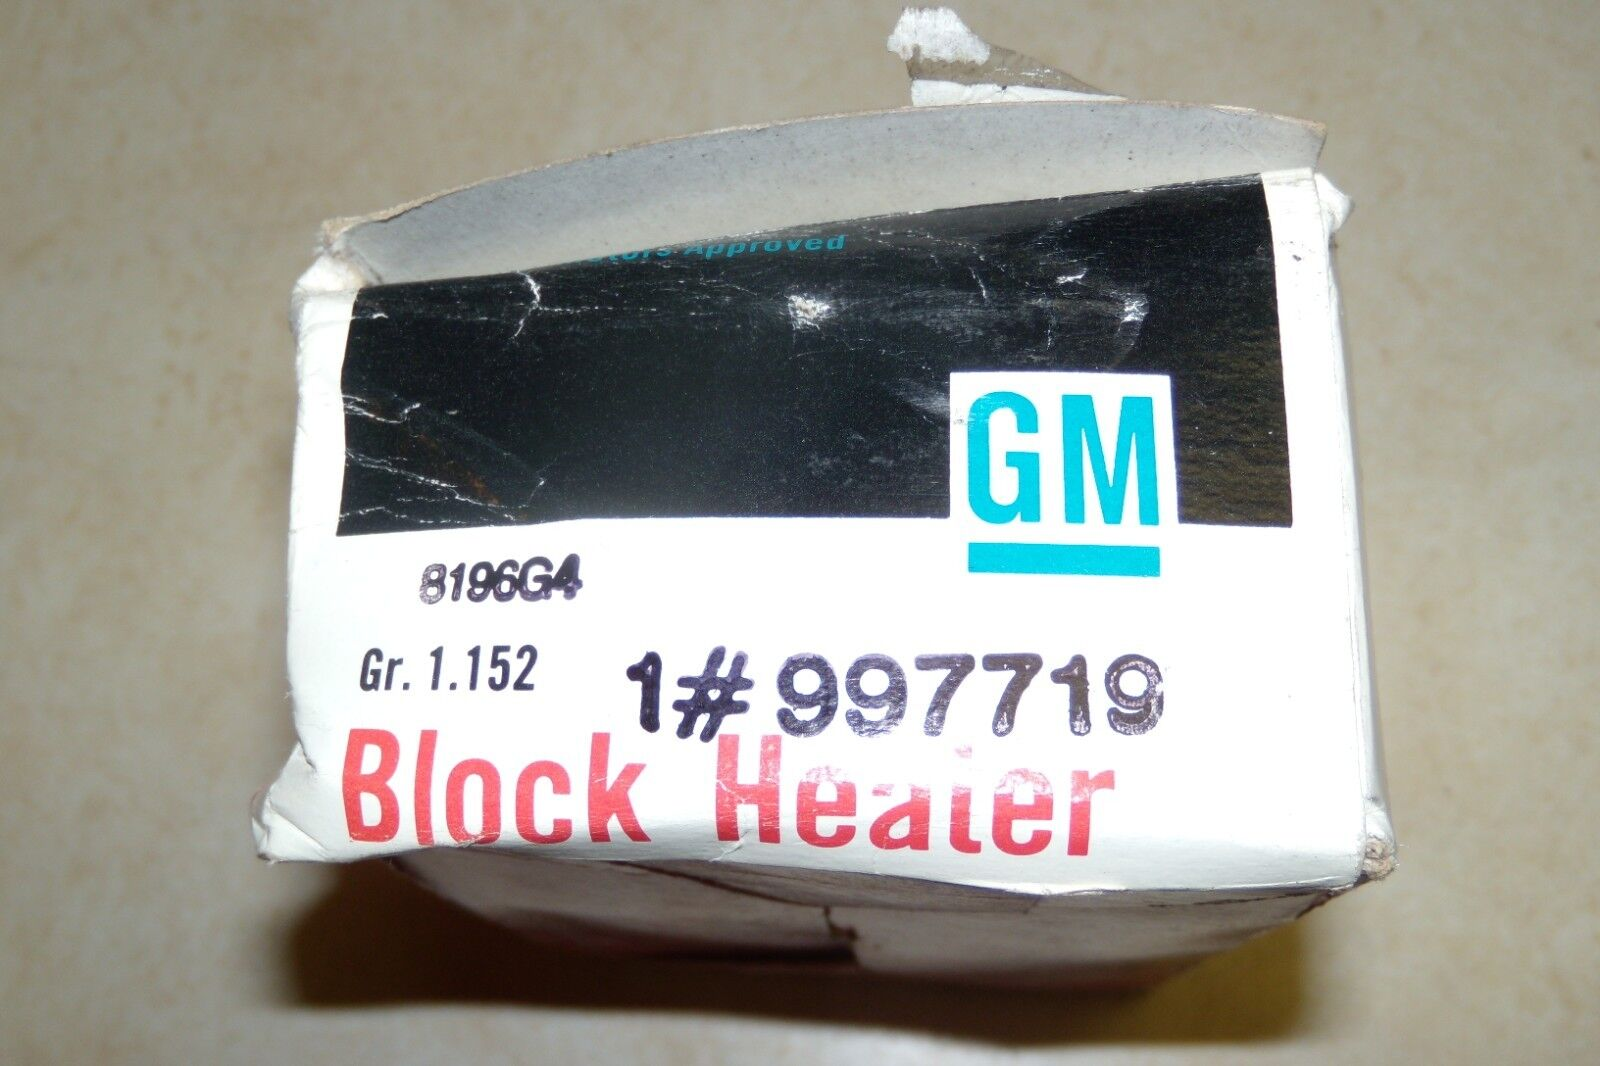 NOS GM Chevrolet Buick Olds Pontiac Cadillac Accessory Engine Block Heater